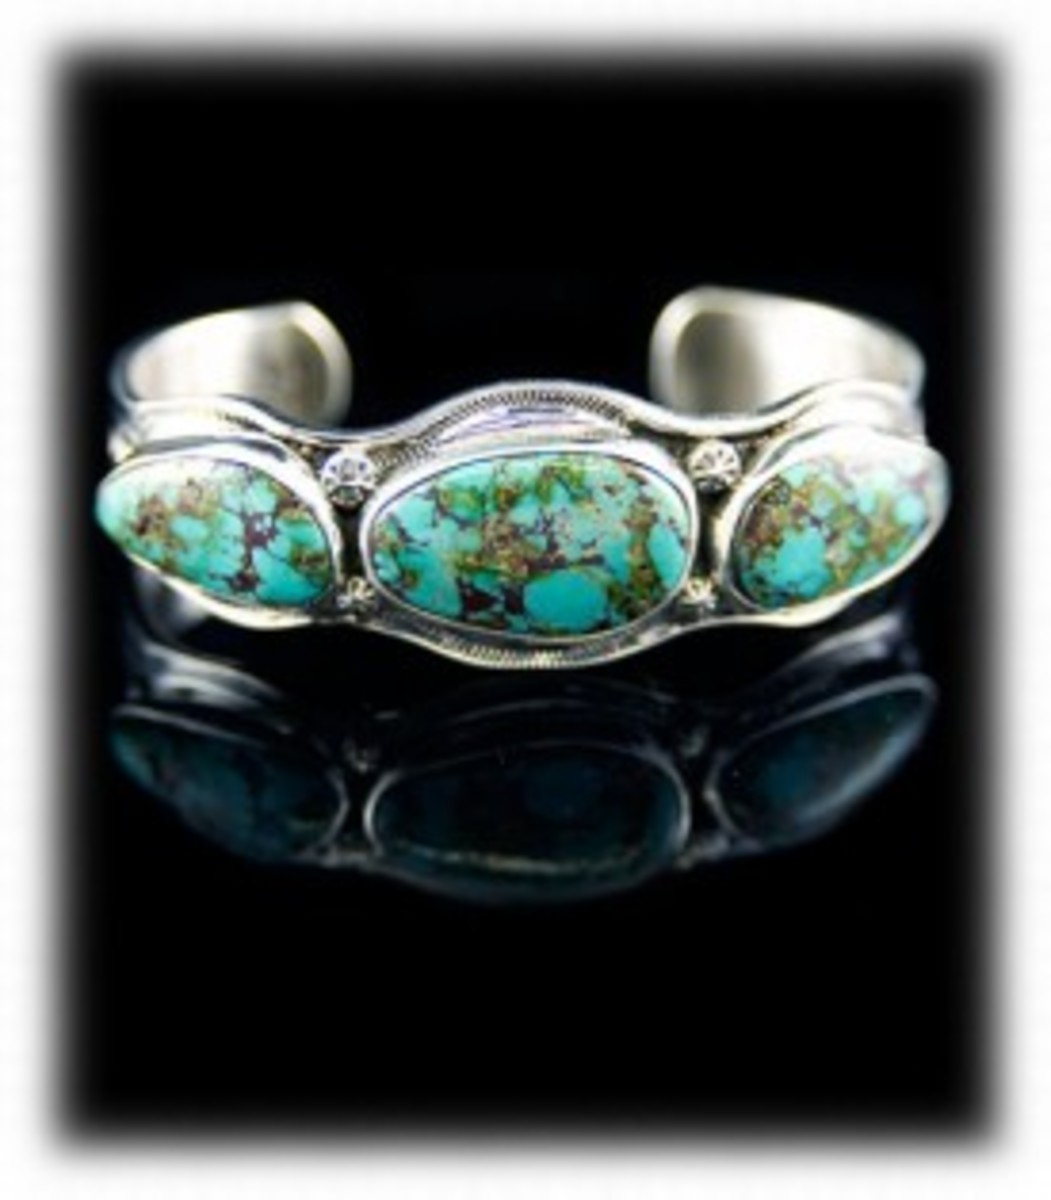 Bisbee Turquoise Bracelet.  Three bezel turquoise stones soldered on top of a silver stamped bracelet frame.  Named Bisbee for the Bisbee turquoise mine in Arizona.